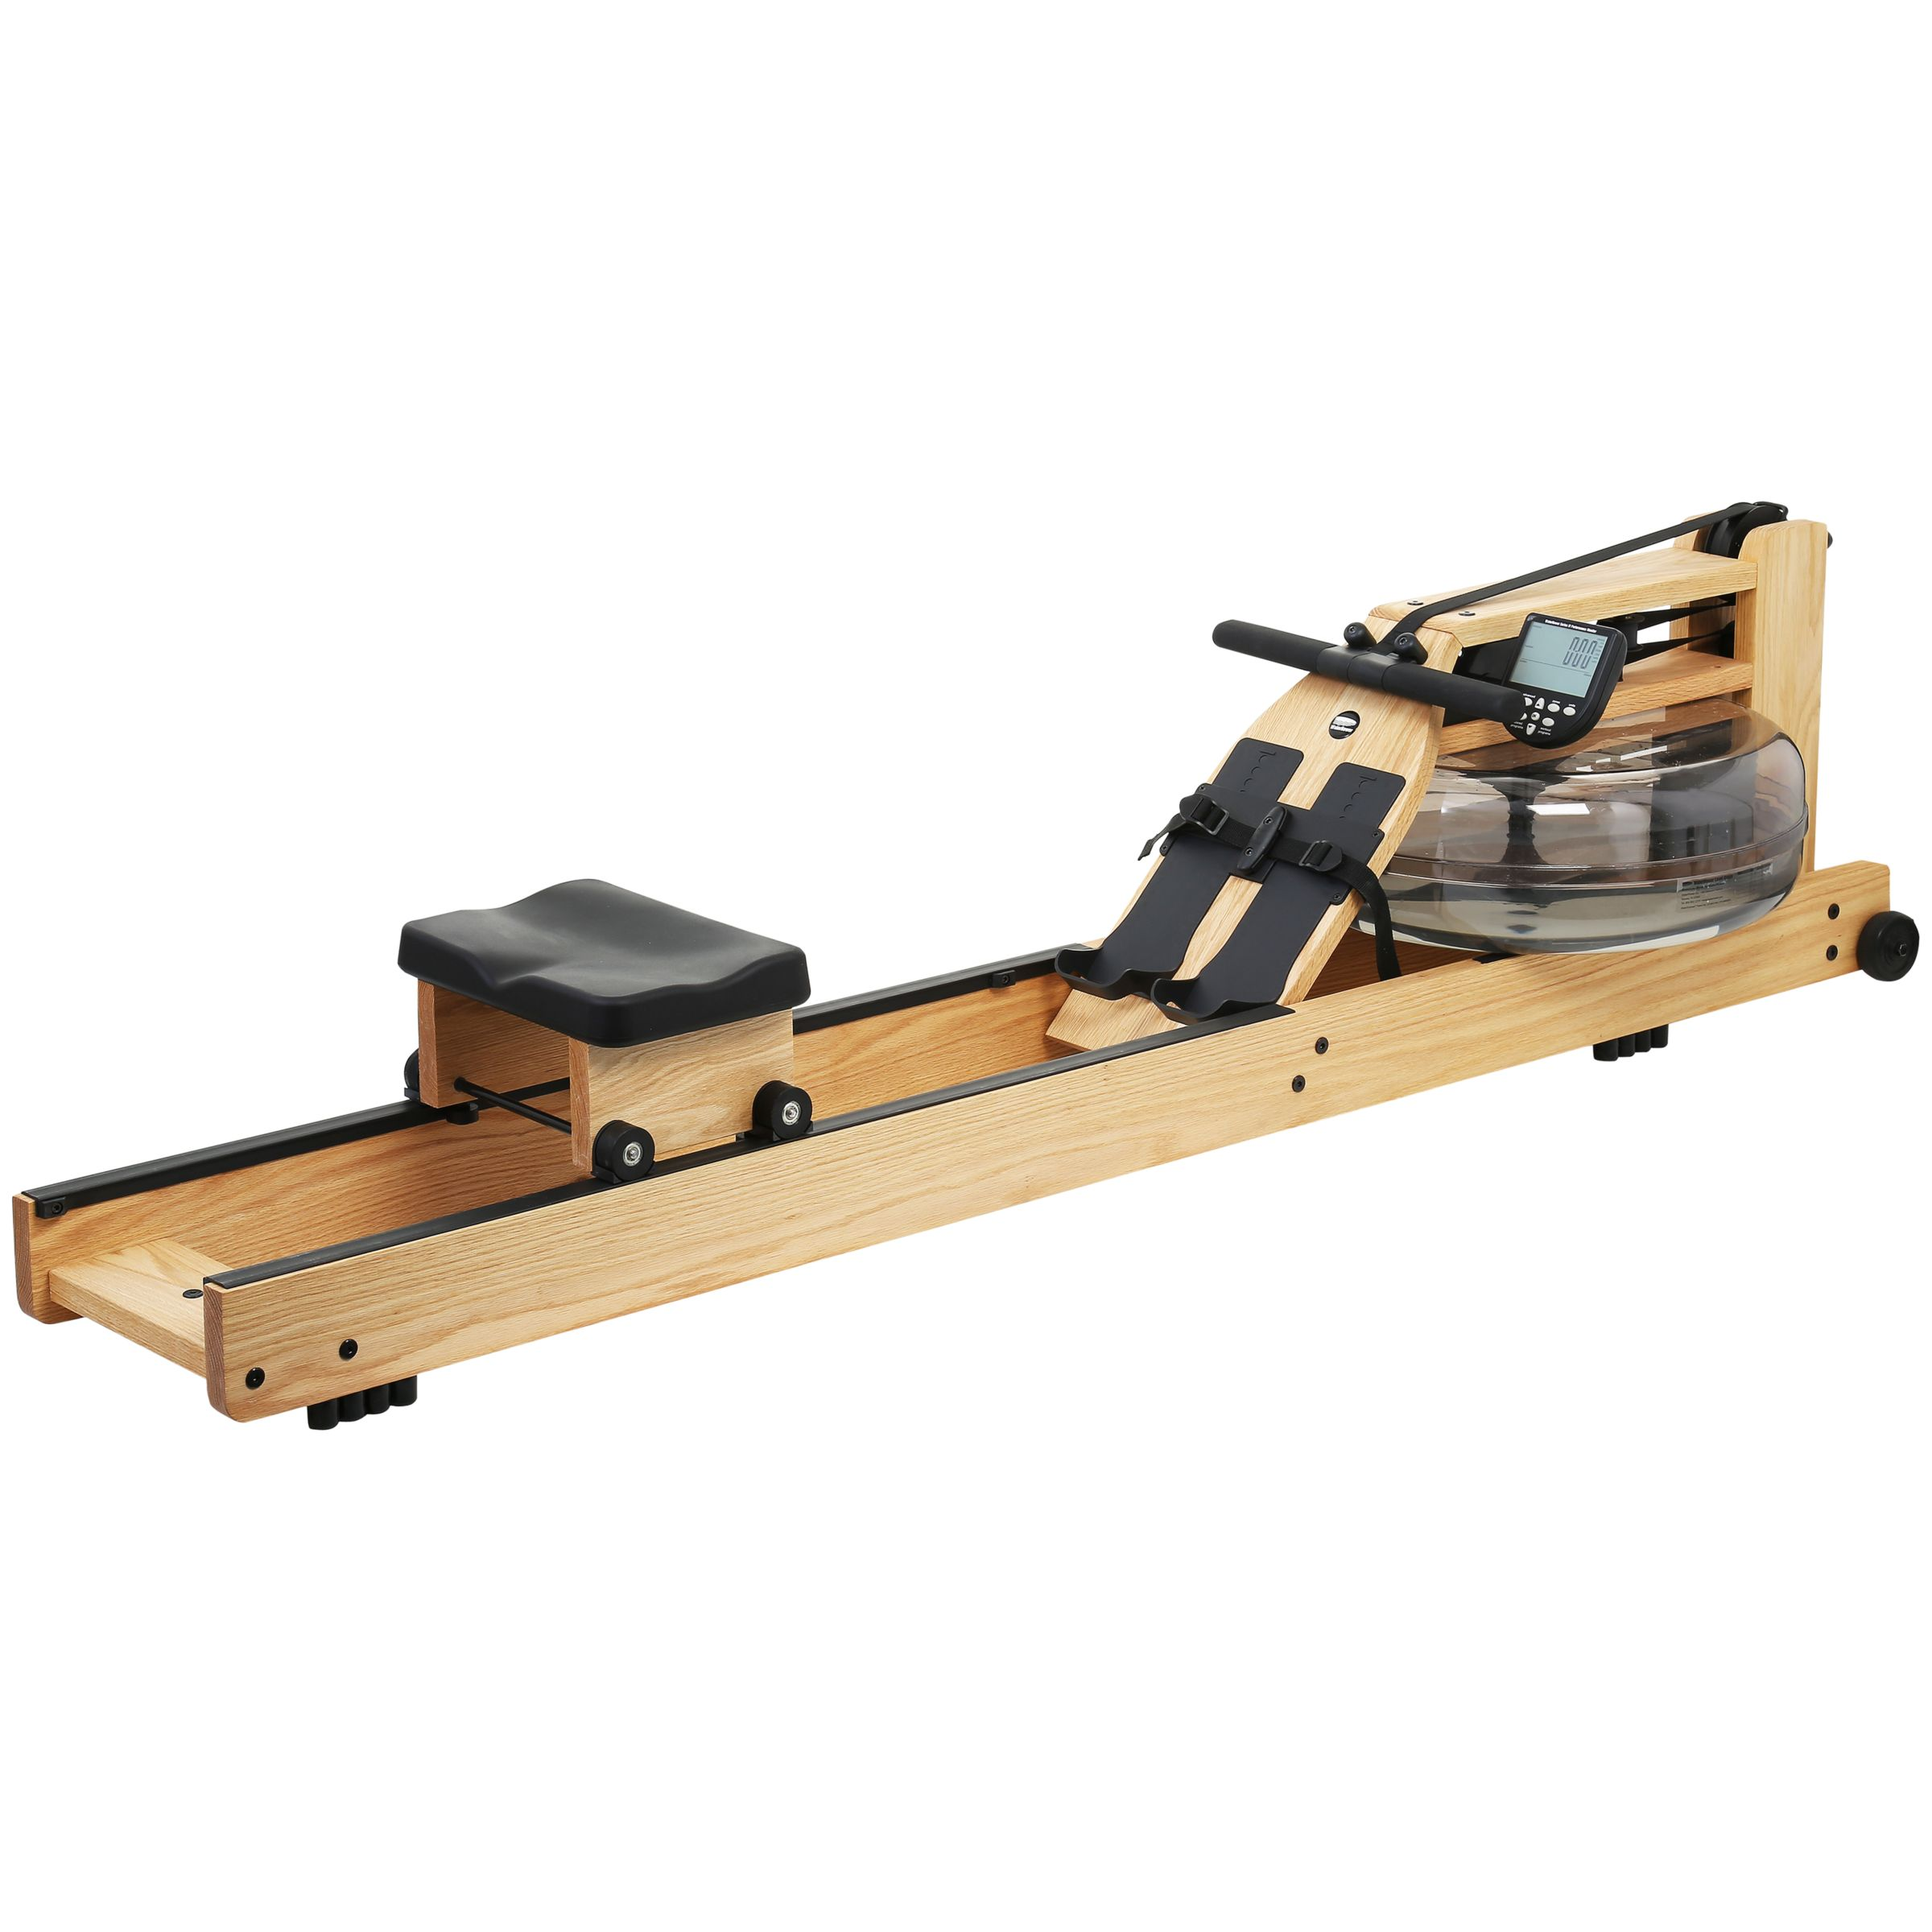 Buy WaterRower Rowing Machine with S4 Performance Monitor, Oak Online at johnlewis.com